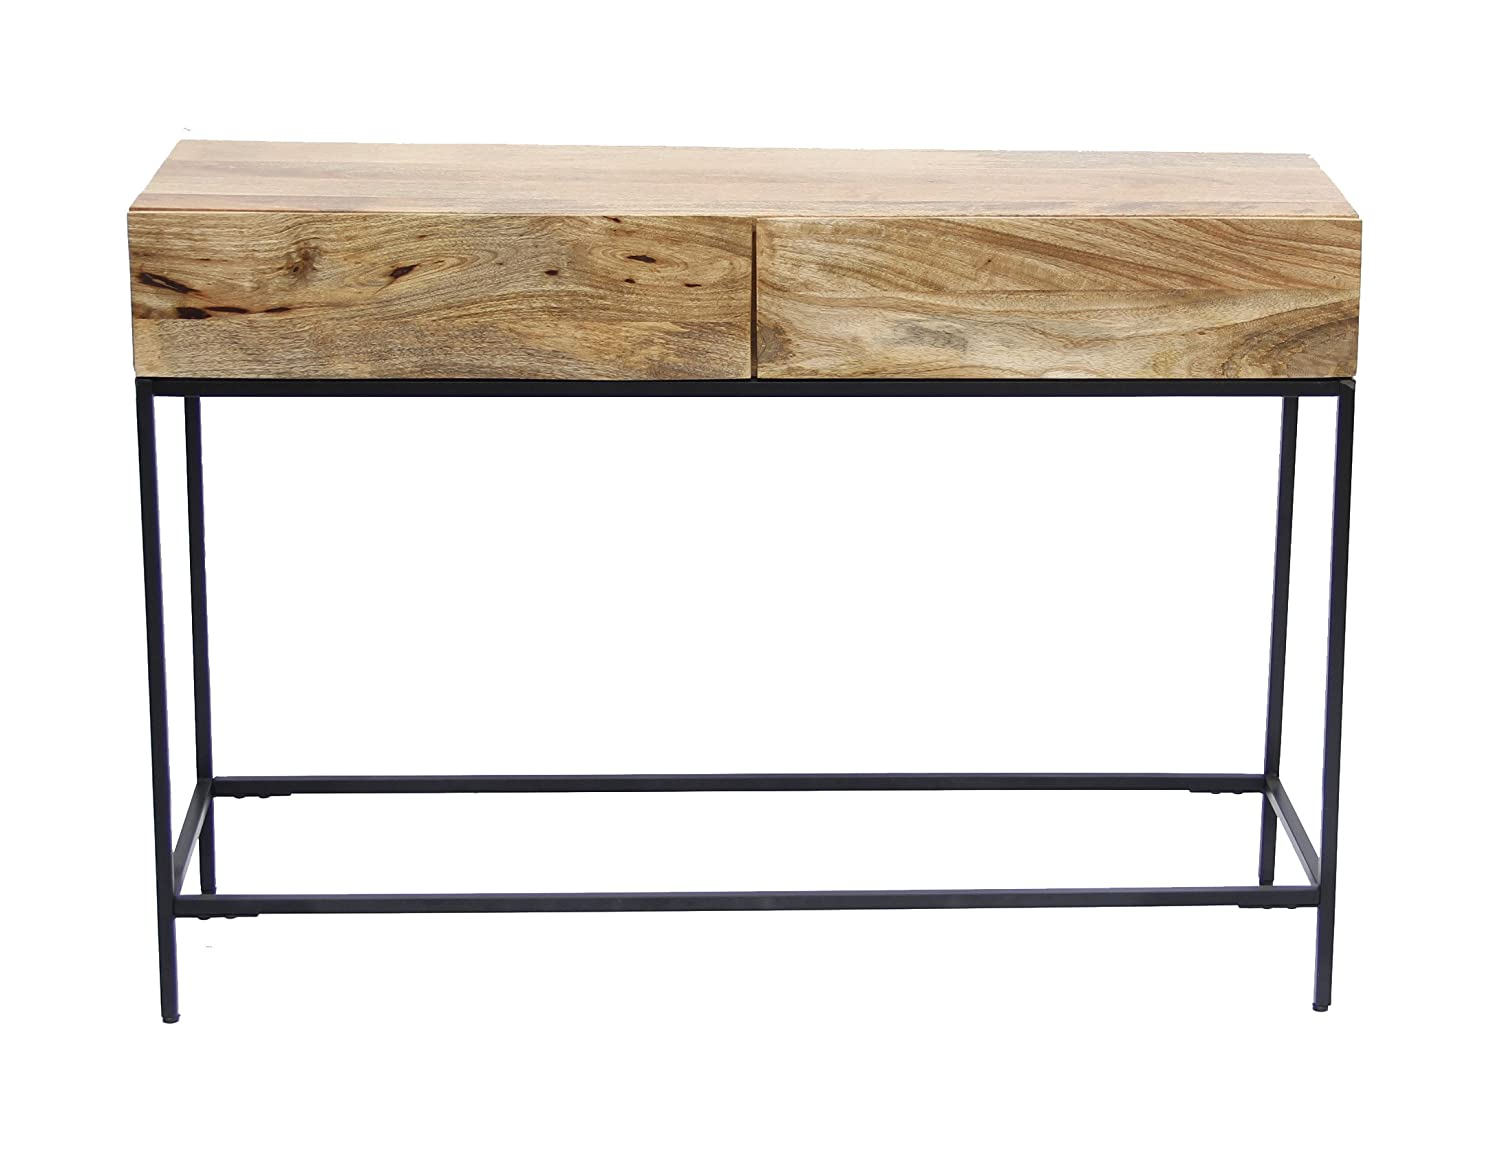 Amazon.com: The Urban Port 39270 Industrial Style Console Table With Two  Drawers Natural Wood: Home U0026 Kitchen